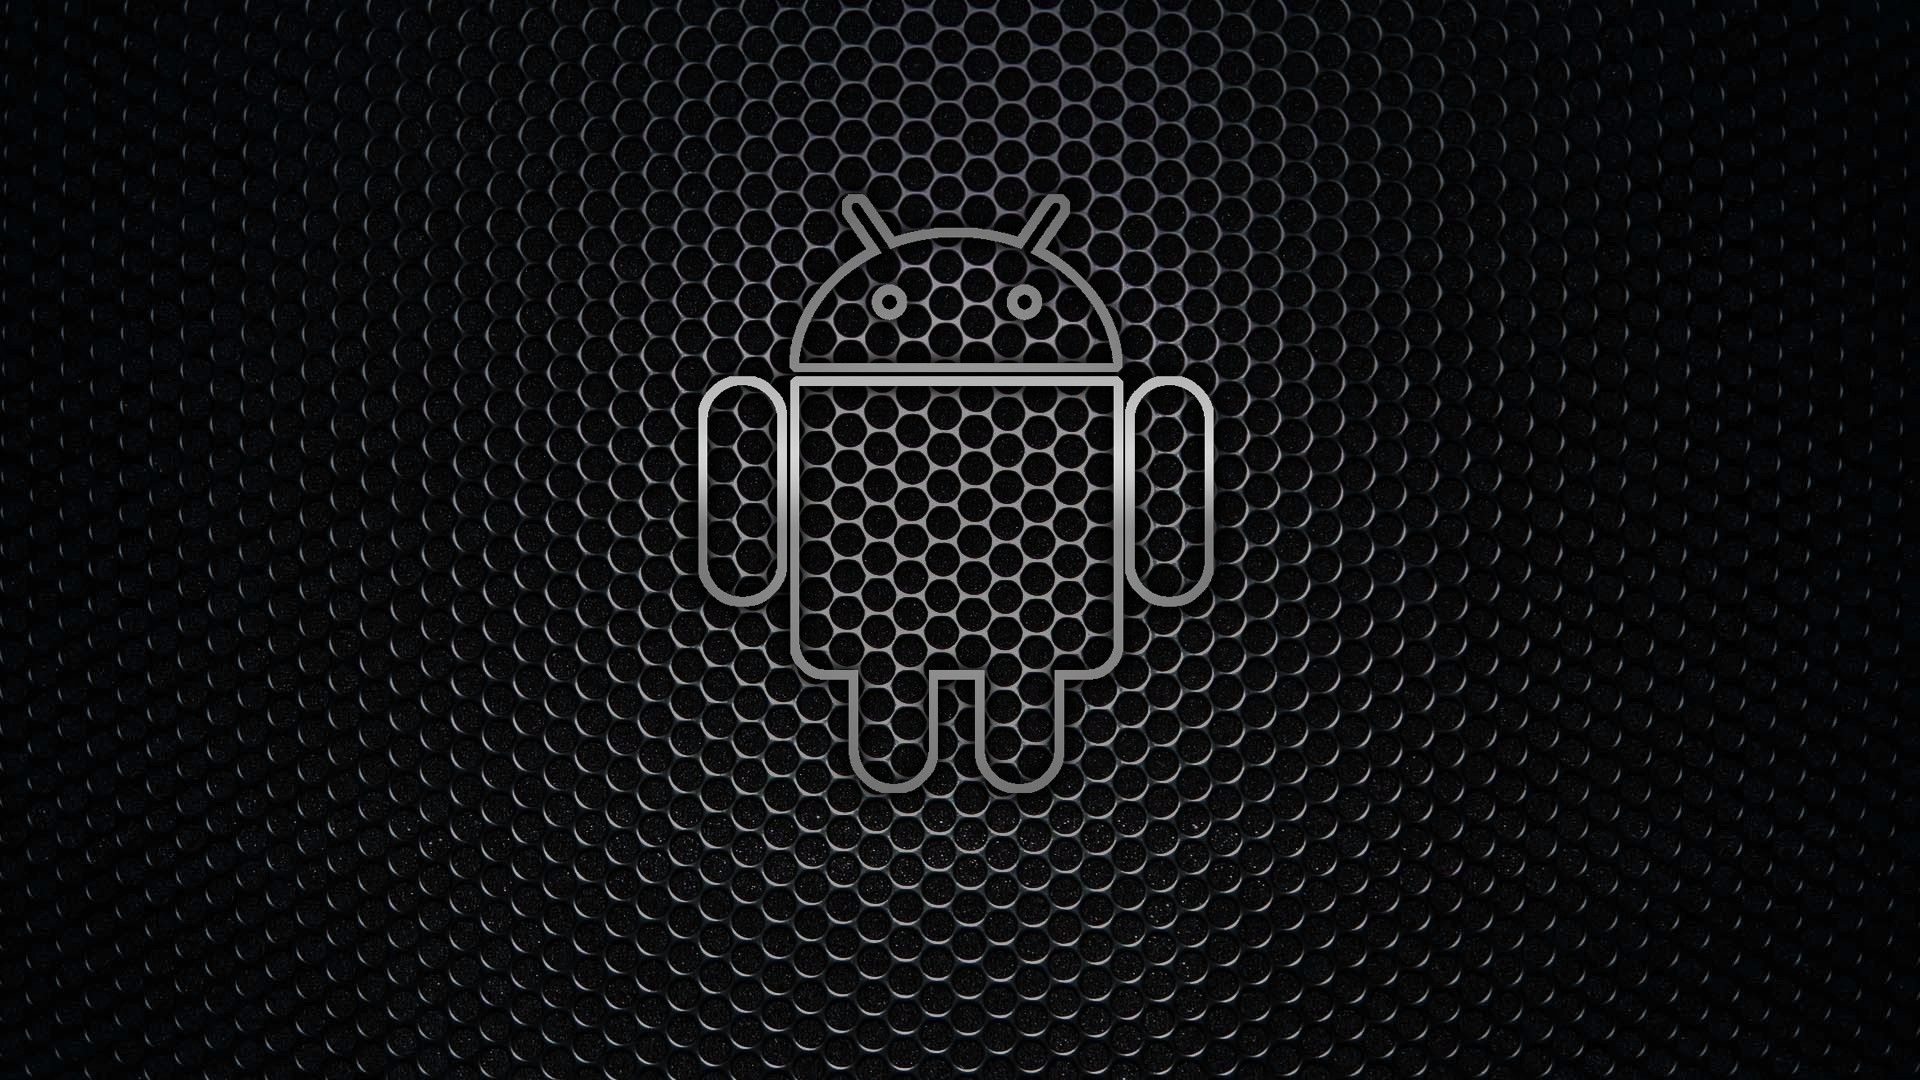 Android-wallpaper-hd-AW015